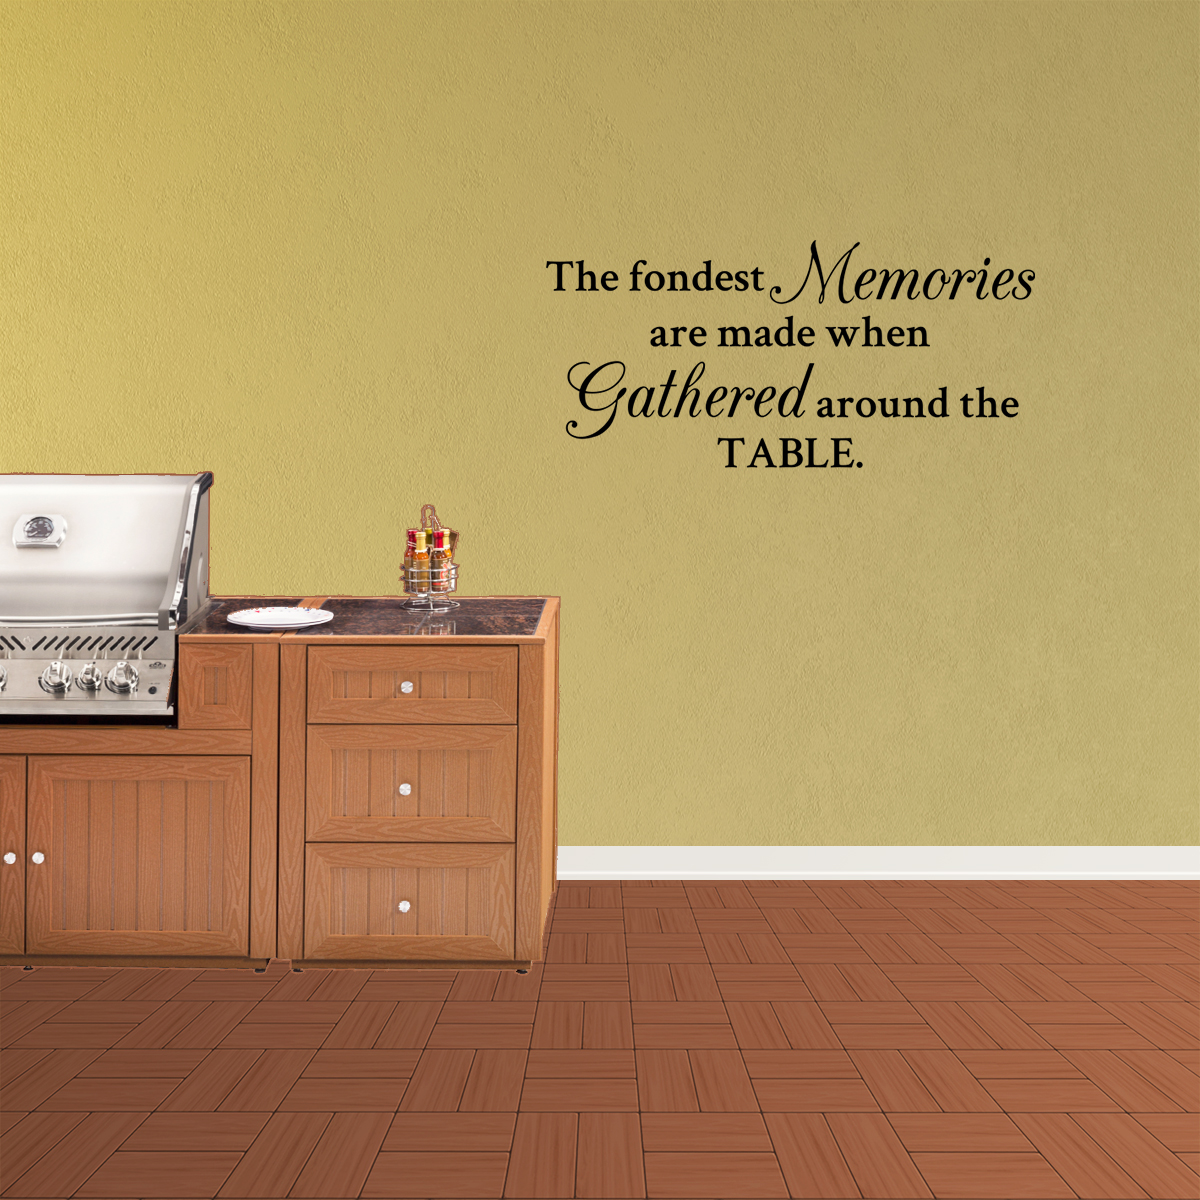 Wall Decal Quote The Fondest Memories Are Made When Gathered Around The Table Kitchen Dining Room PC955